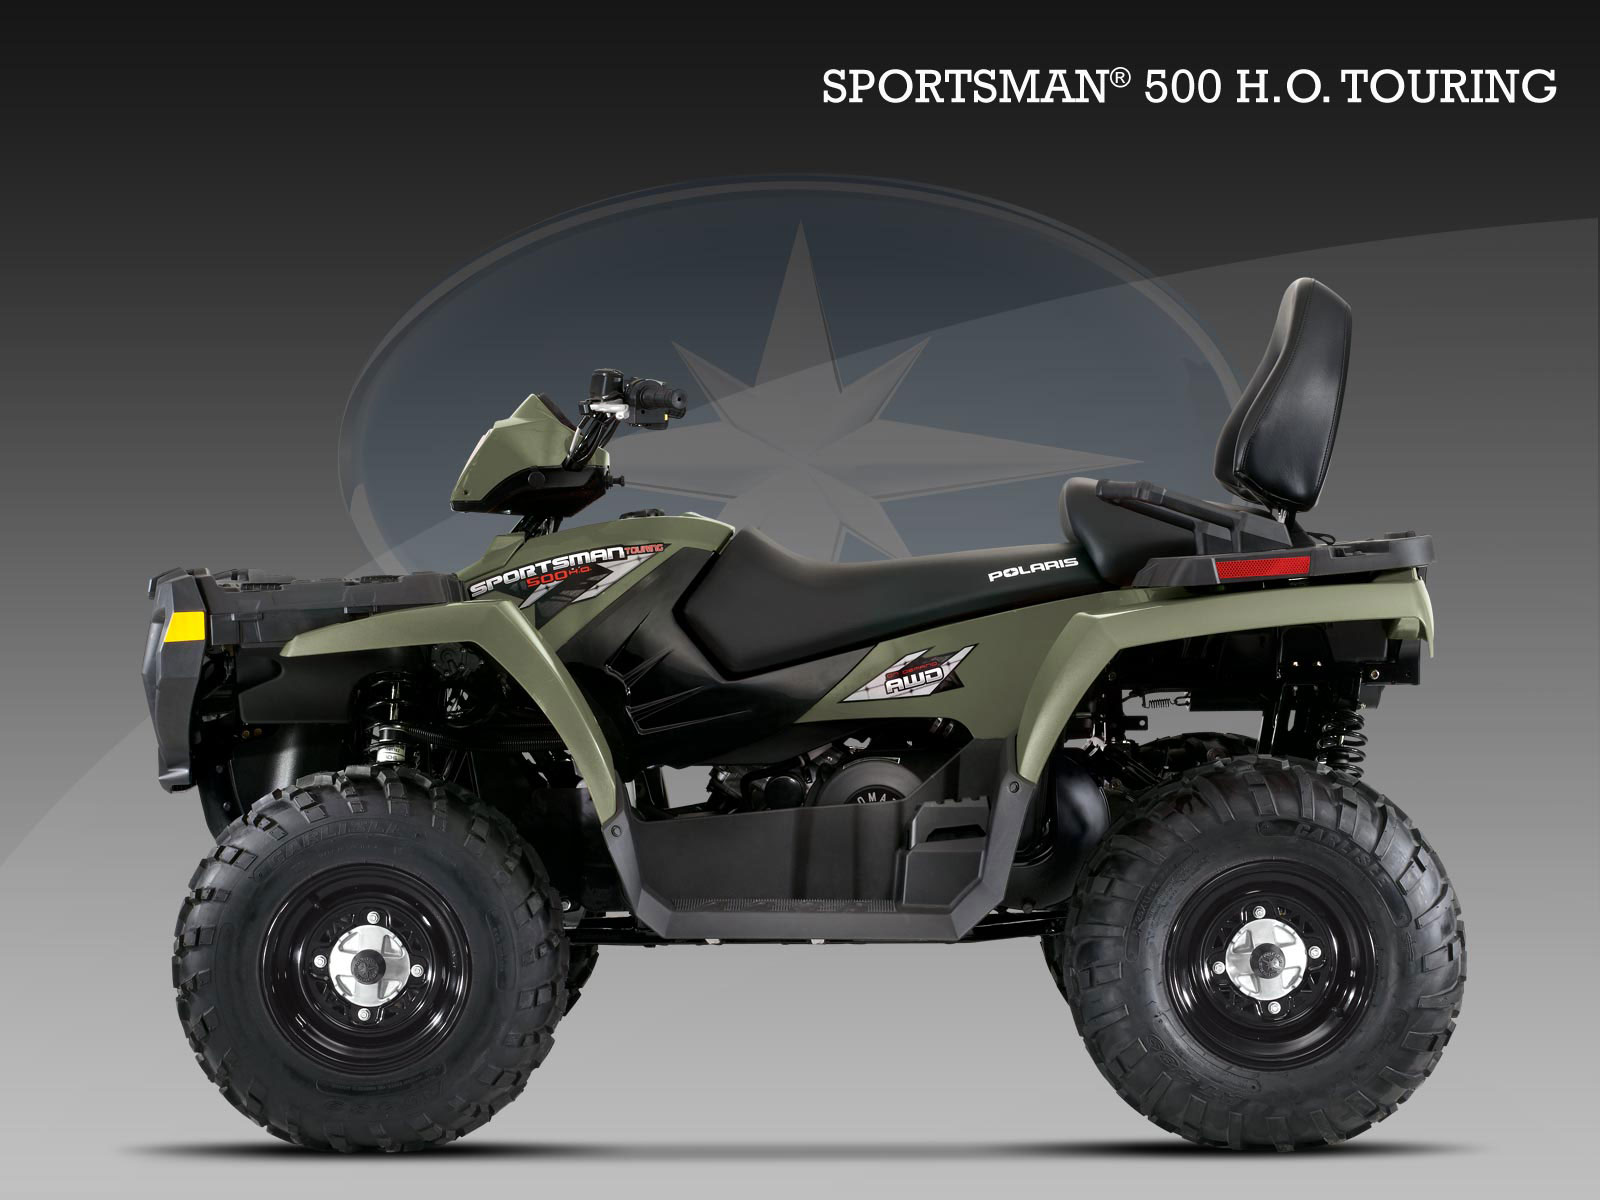 2010 Polaris 500 HO Touring